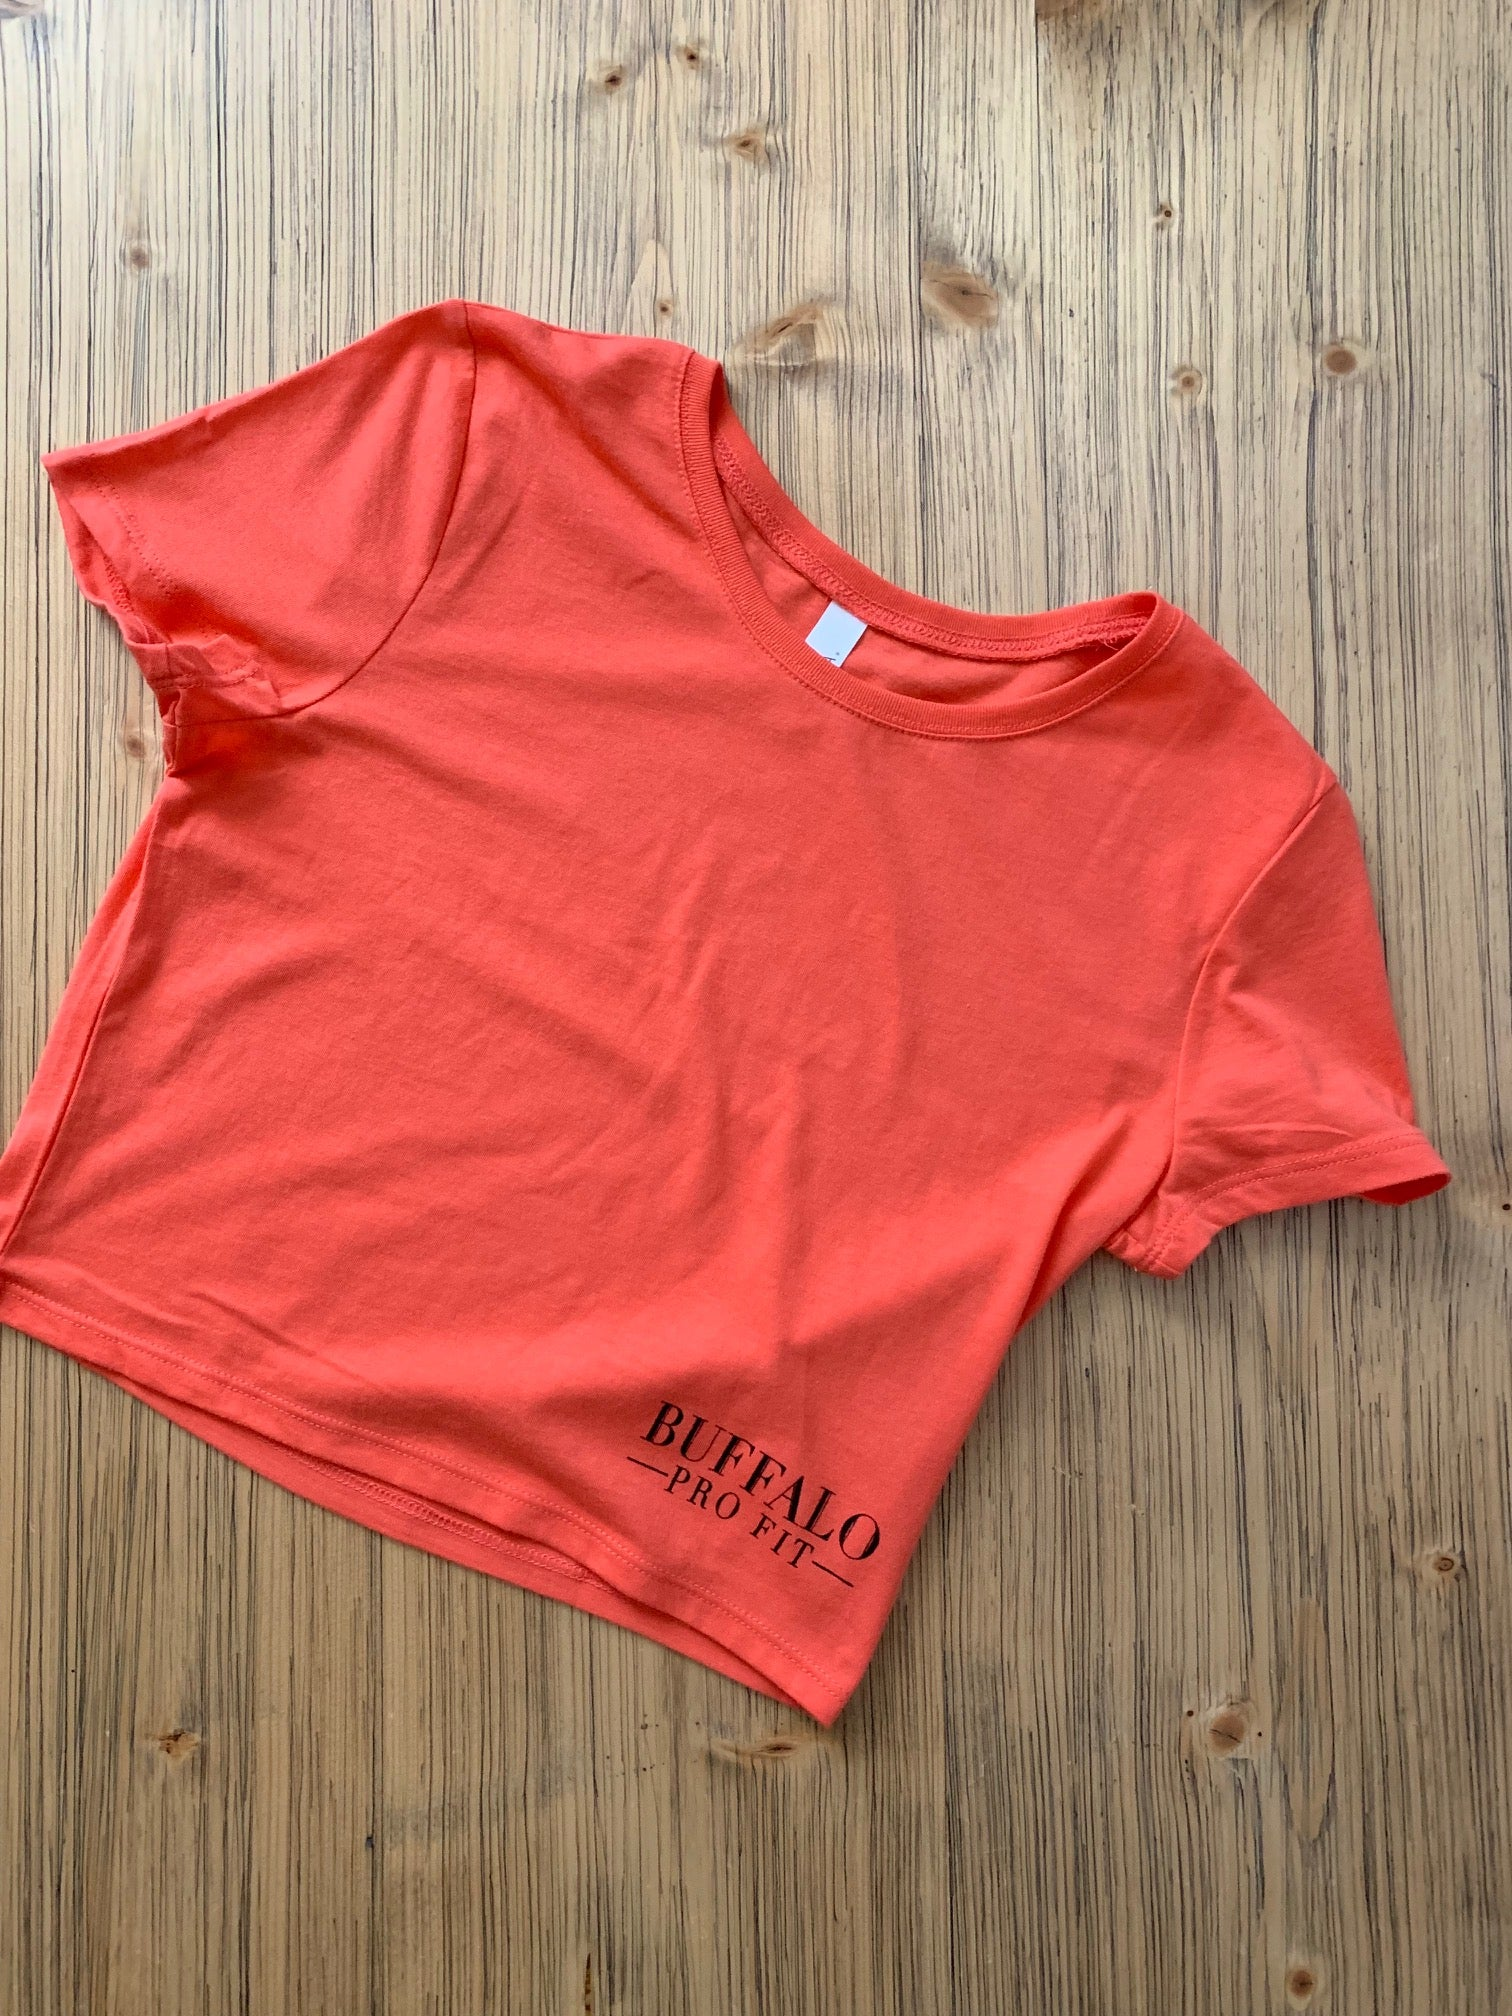 Classic Women's Cropped T-Shirt- Coral